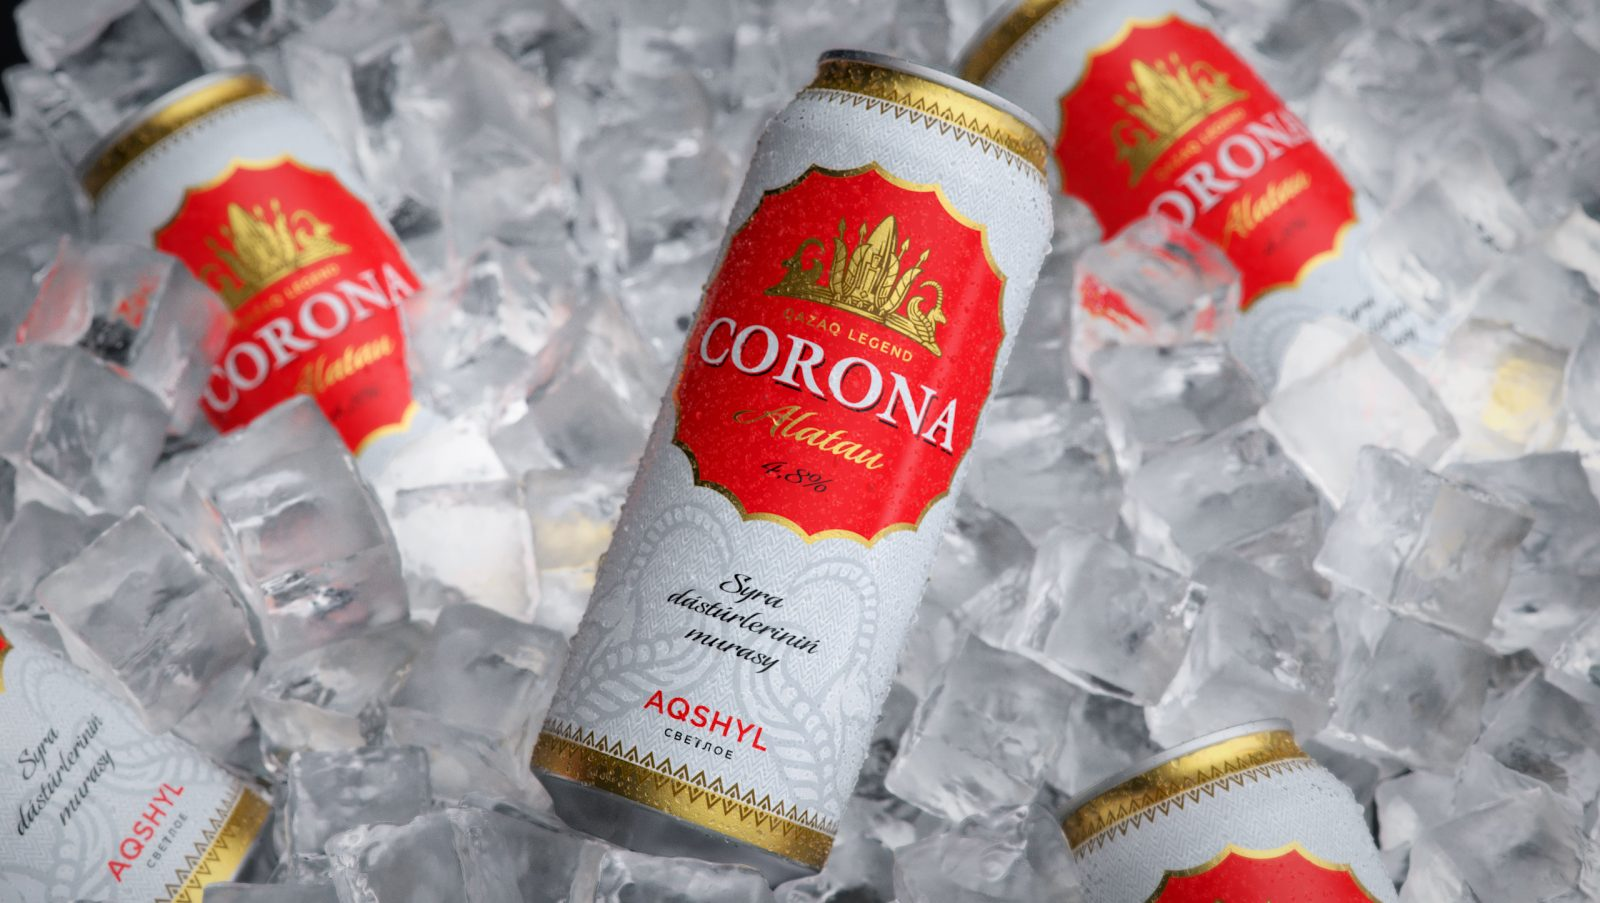 Corona Alatau An Animalistic Style for Kazakh Beer